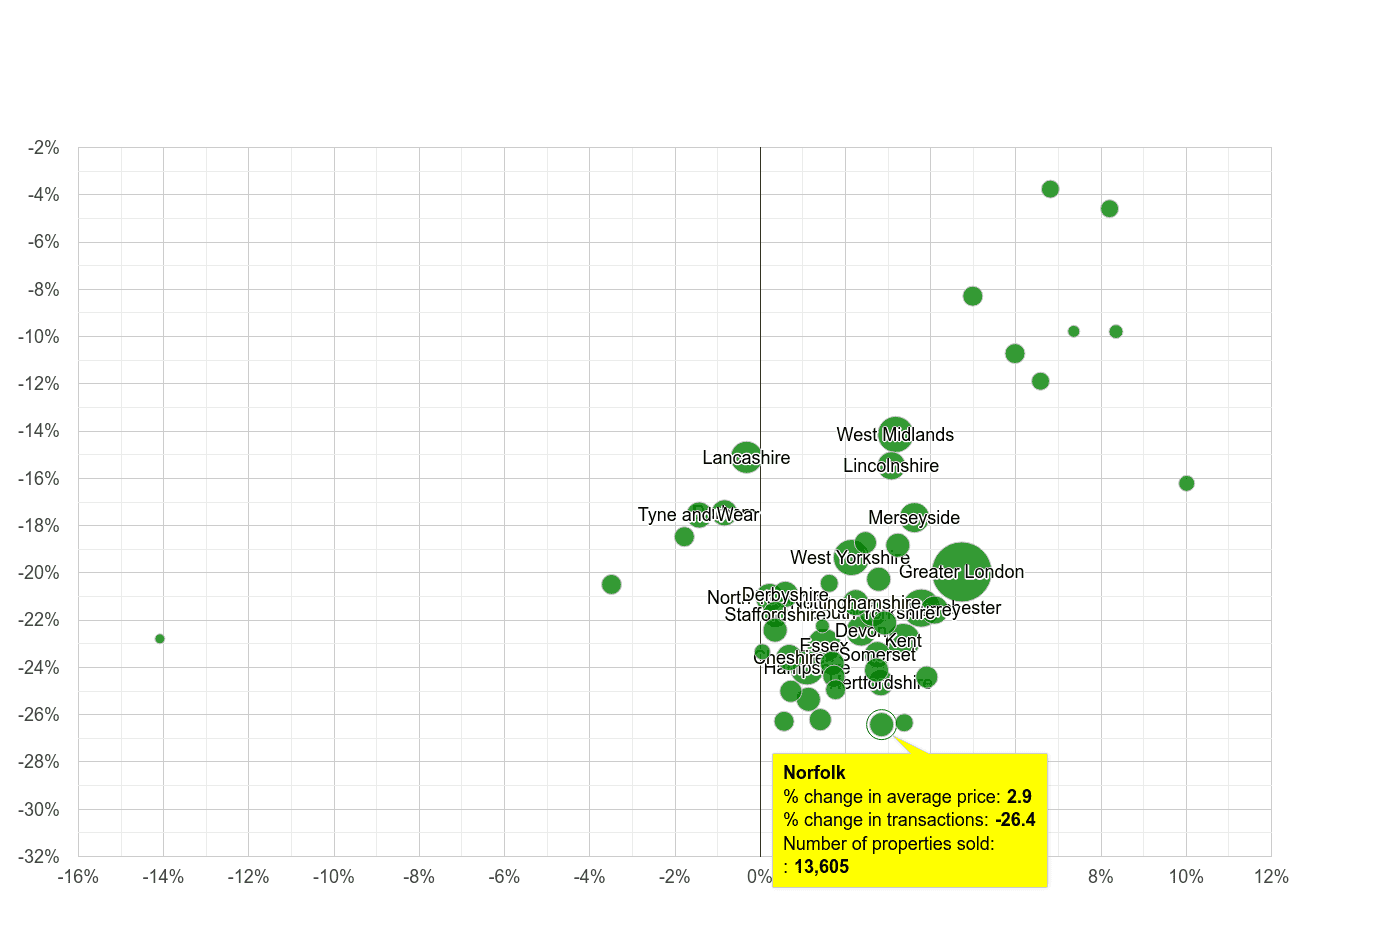 Norfolk property price and sales volume change relative to other counties